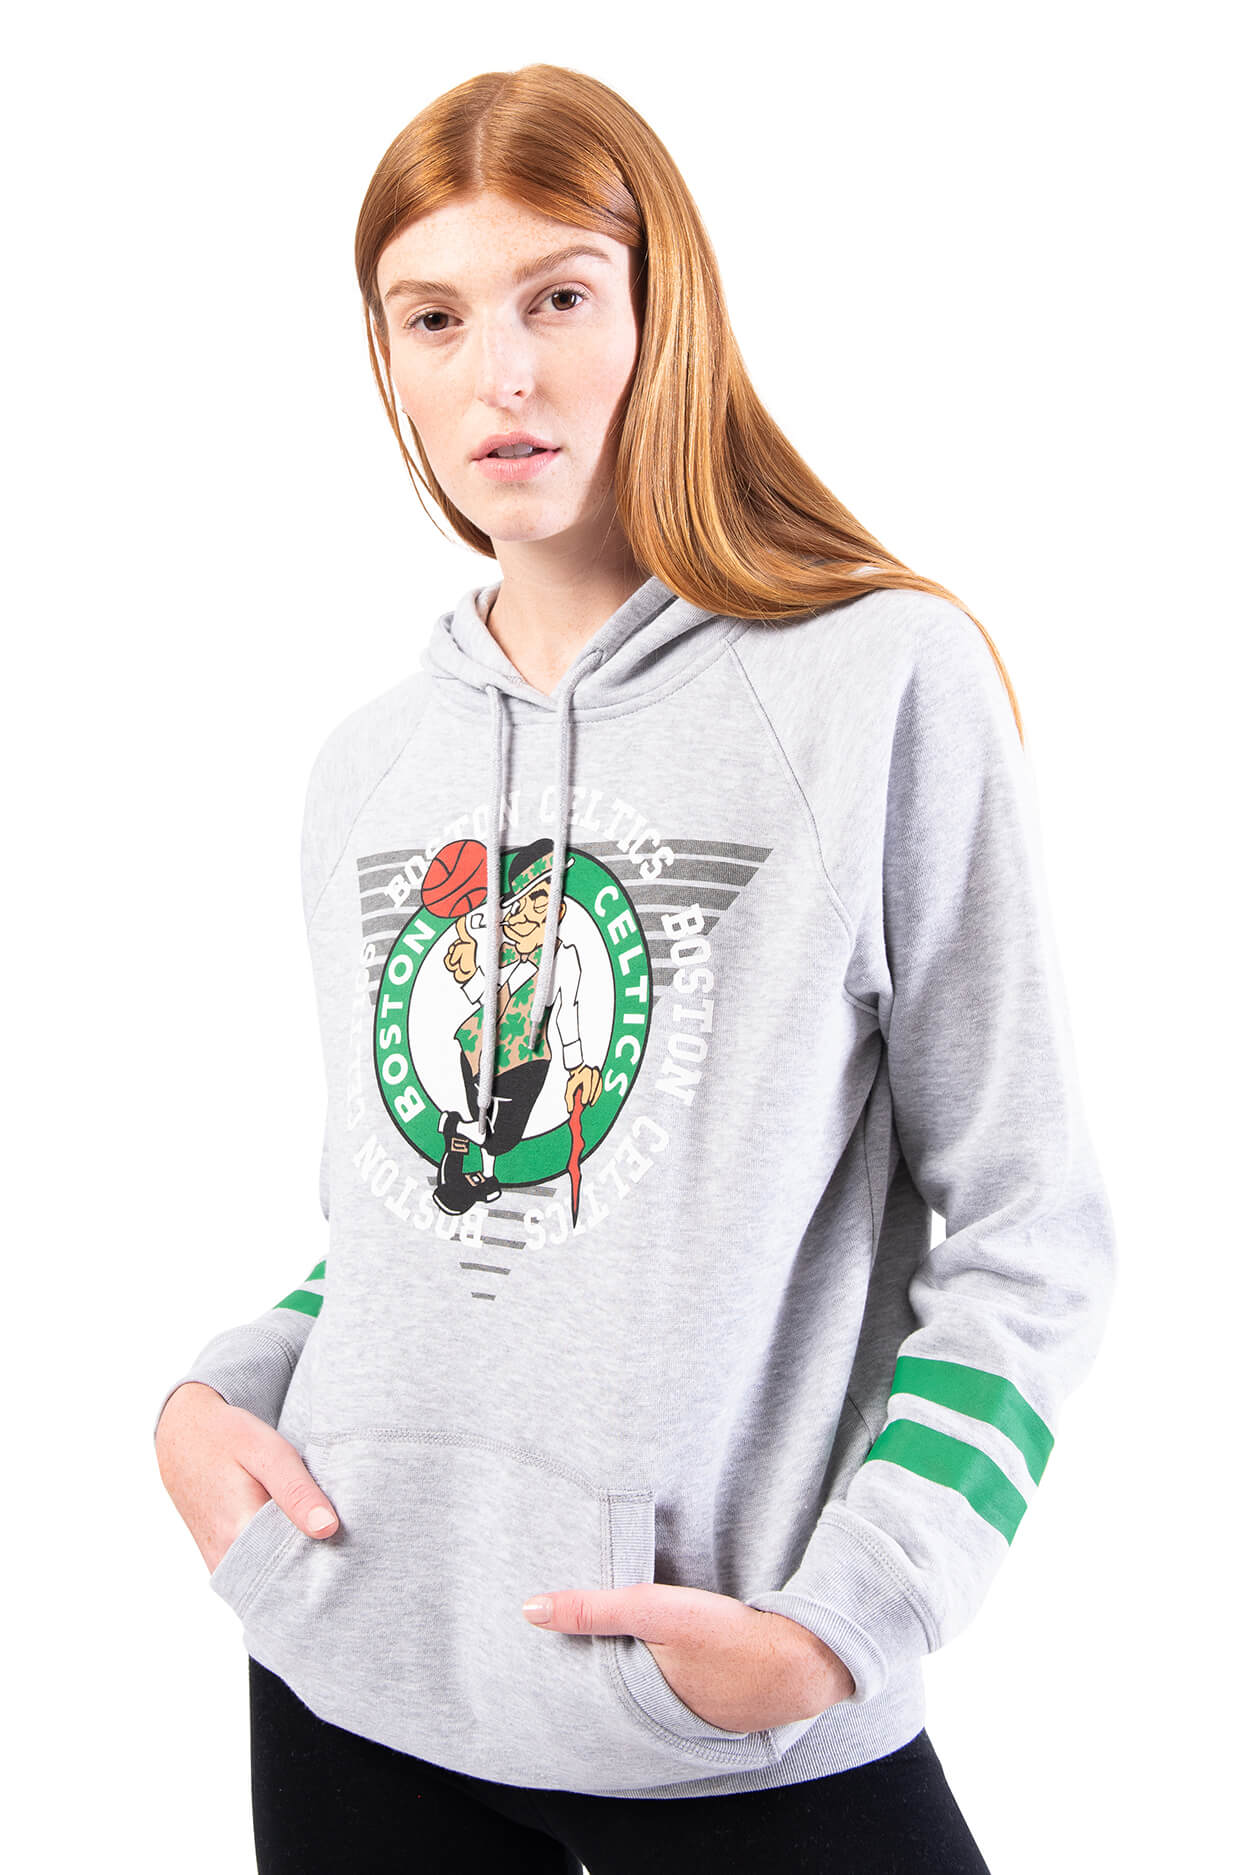 NBA Boston Celtics Women's Hoodie Varsity Stripe|Boston Celtics